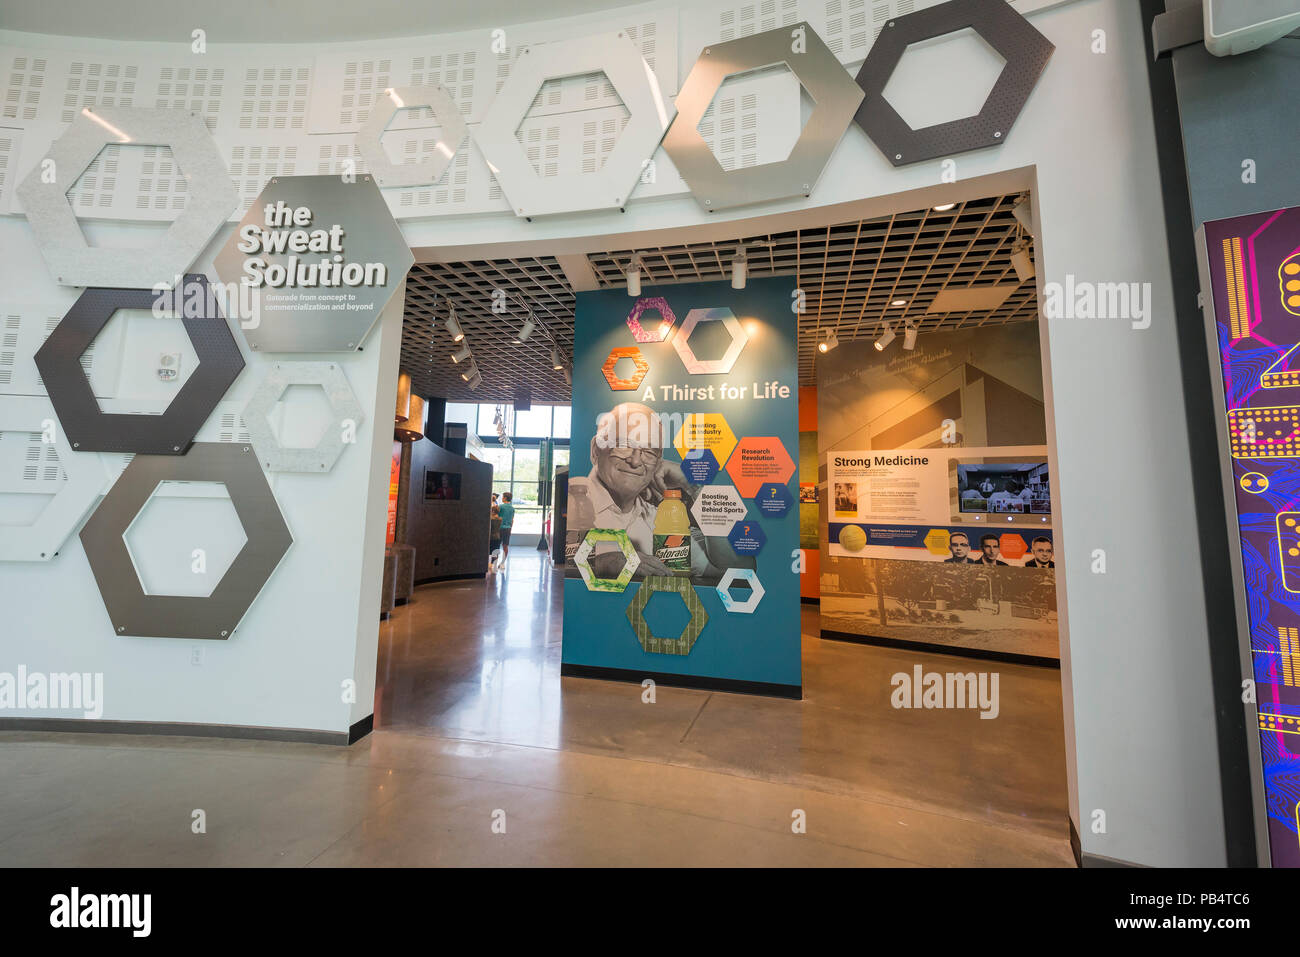 The Cade Museum of Creativity and Invention in Gainesville, Florida. - Stock Image